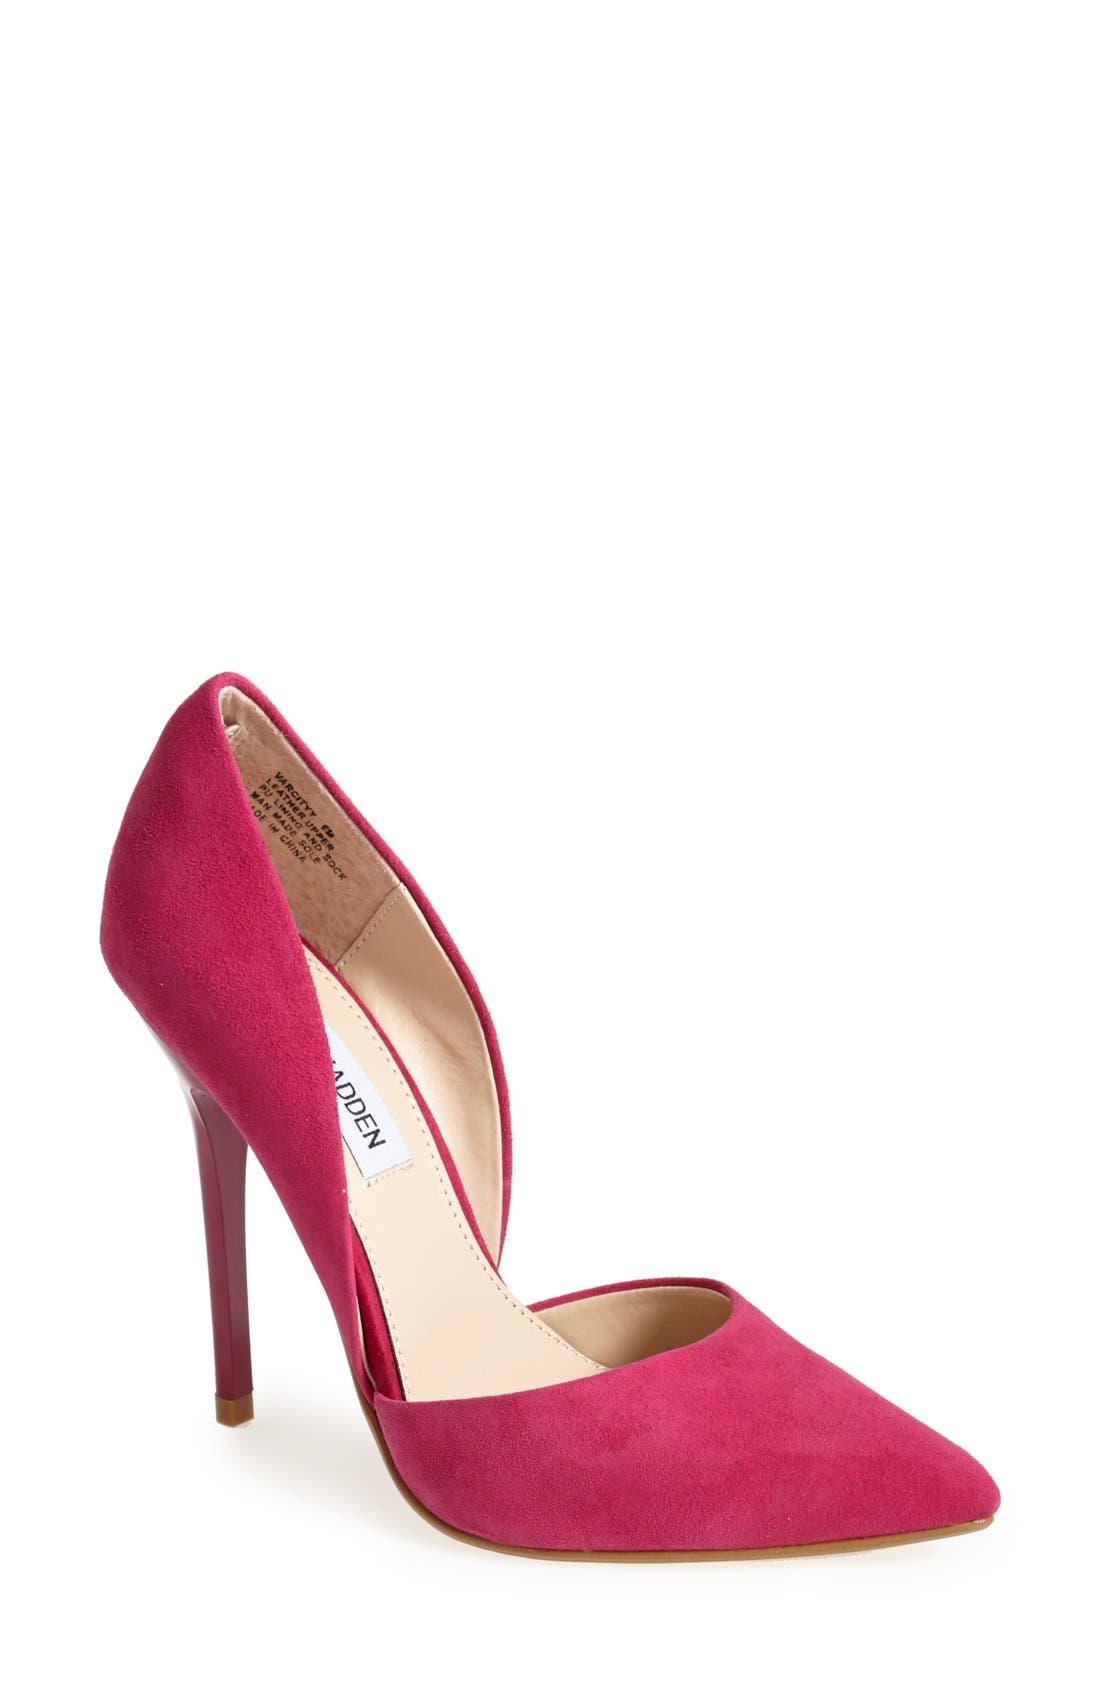 Alternate Image 1 Selected - Steve Madden 'Varcityy' Pointy Toe Pump (Women)